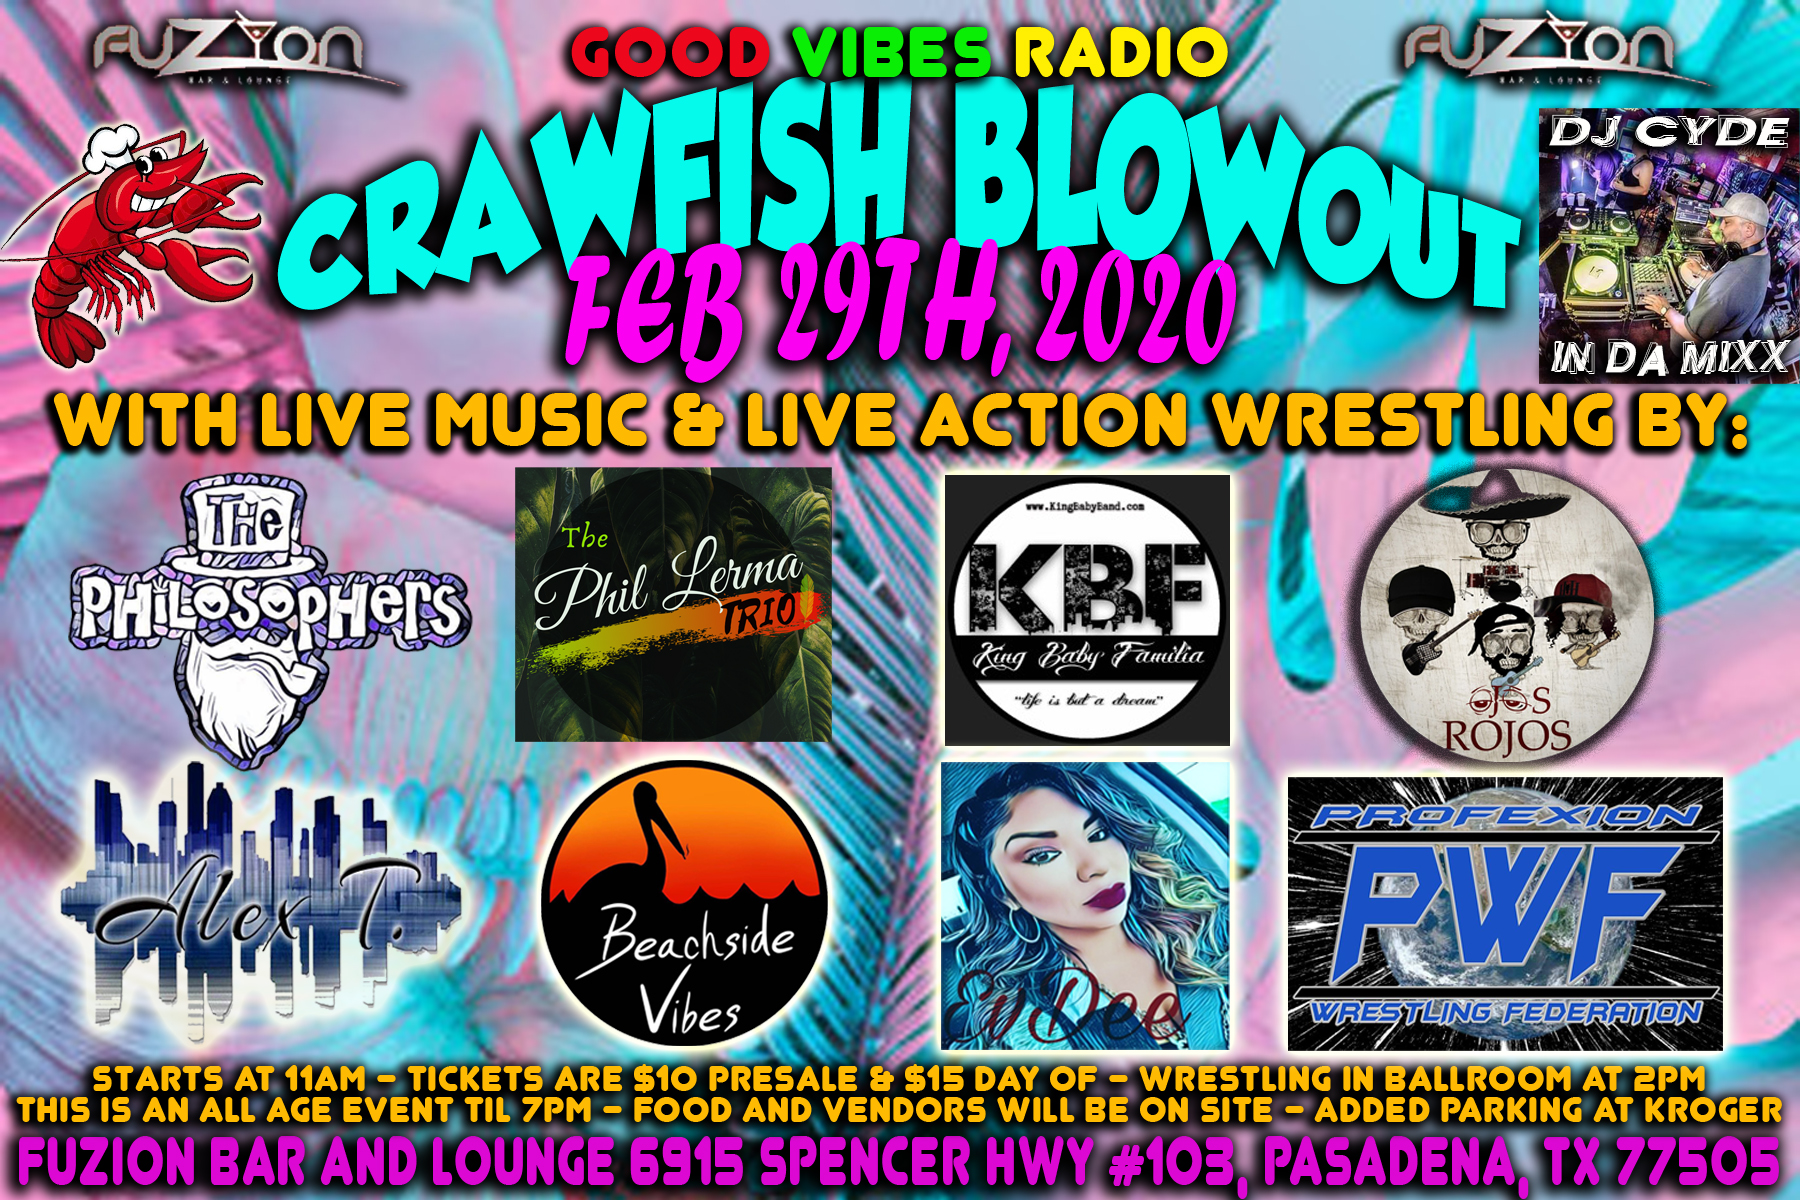 Pasadena, Tx is having a HUGE Crawfish Blowout with 7 bands, live action wrestling and plenty Mudbugs!!!